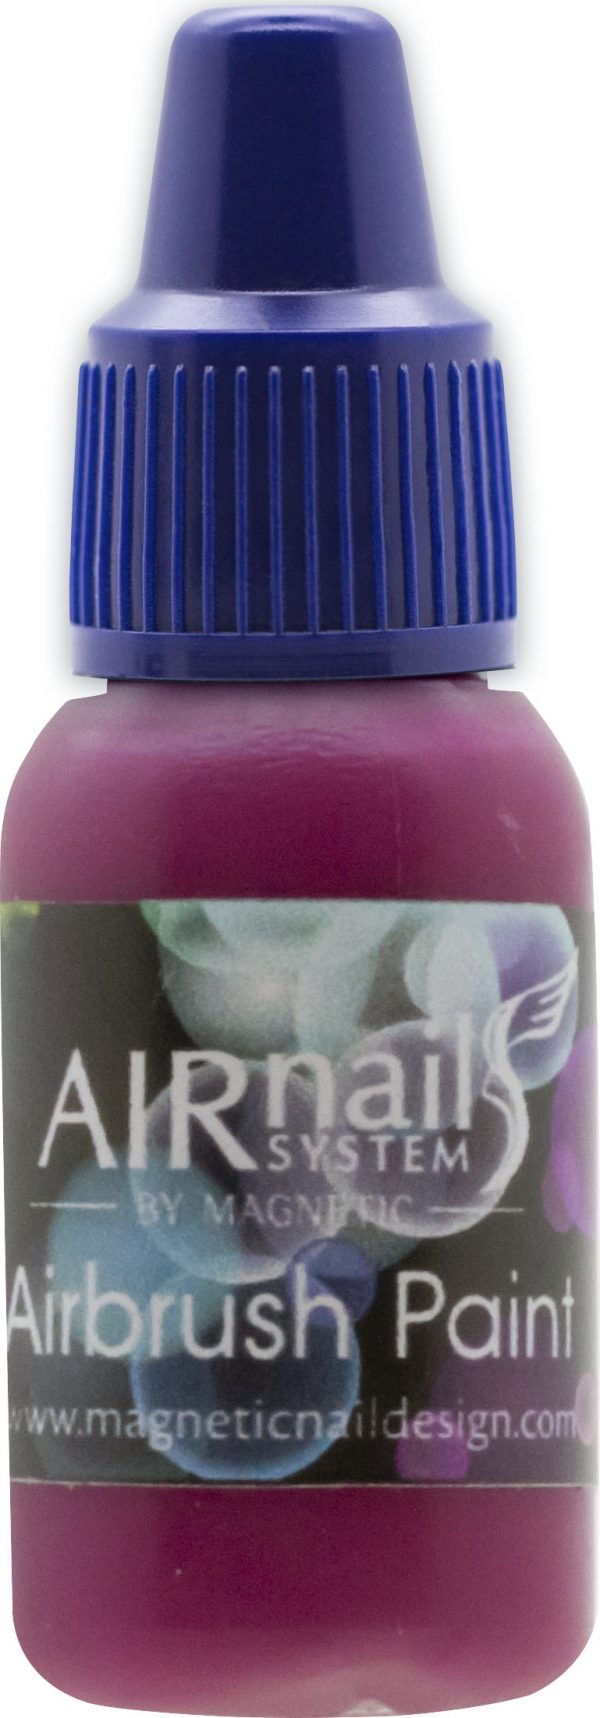 AirNails Paint Magenta 8 10ml